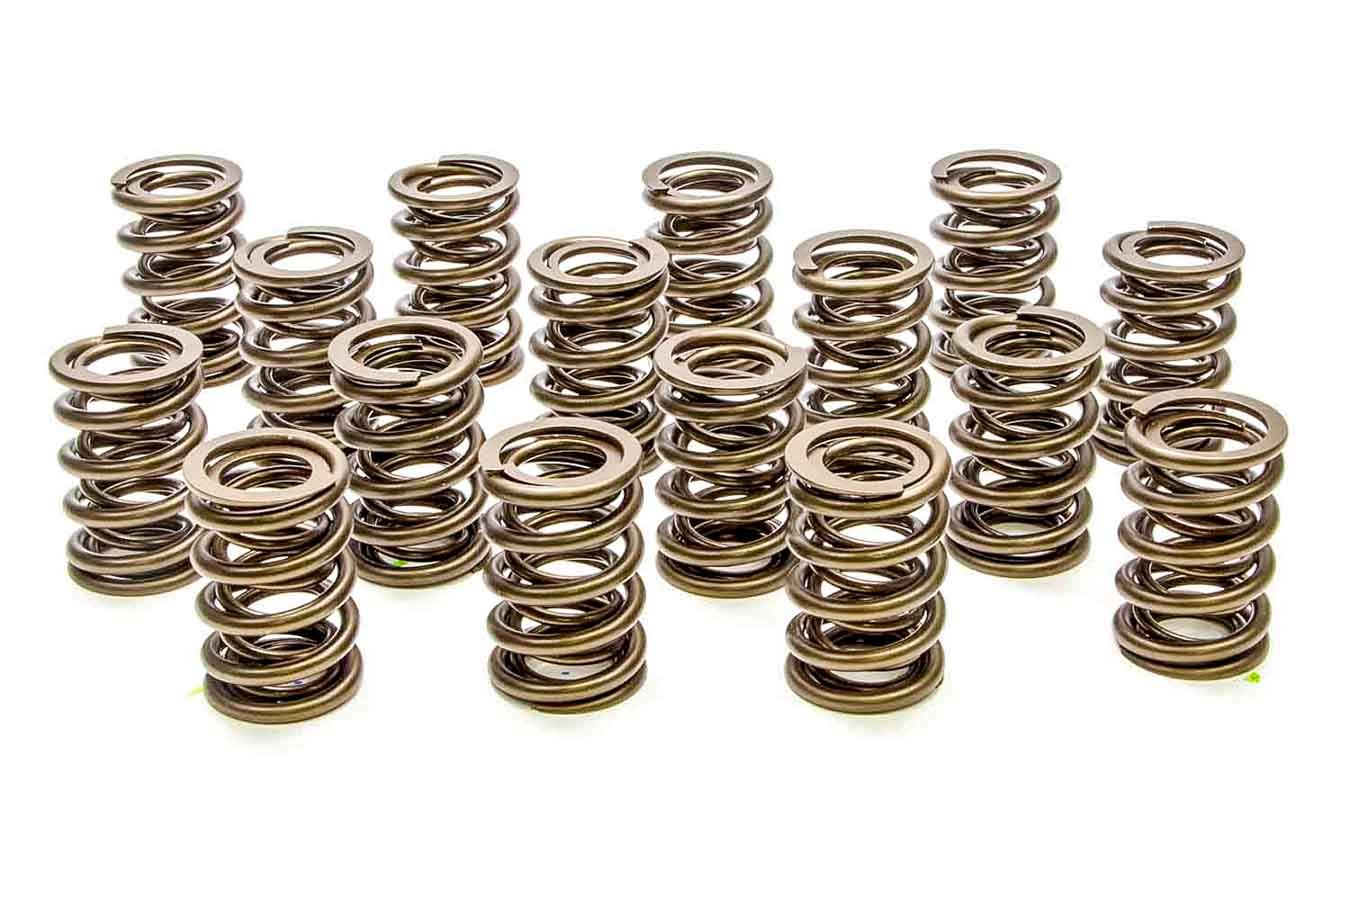 PAC Racing Springs PAC-1908 Valve Spring, Hot Rod Series, Dual Spring, 417 lb/in Spring Rate, 0.910 in Coil Bind, 1.465 in OD, Set of 16